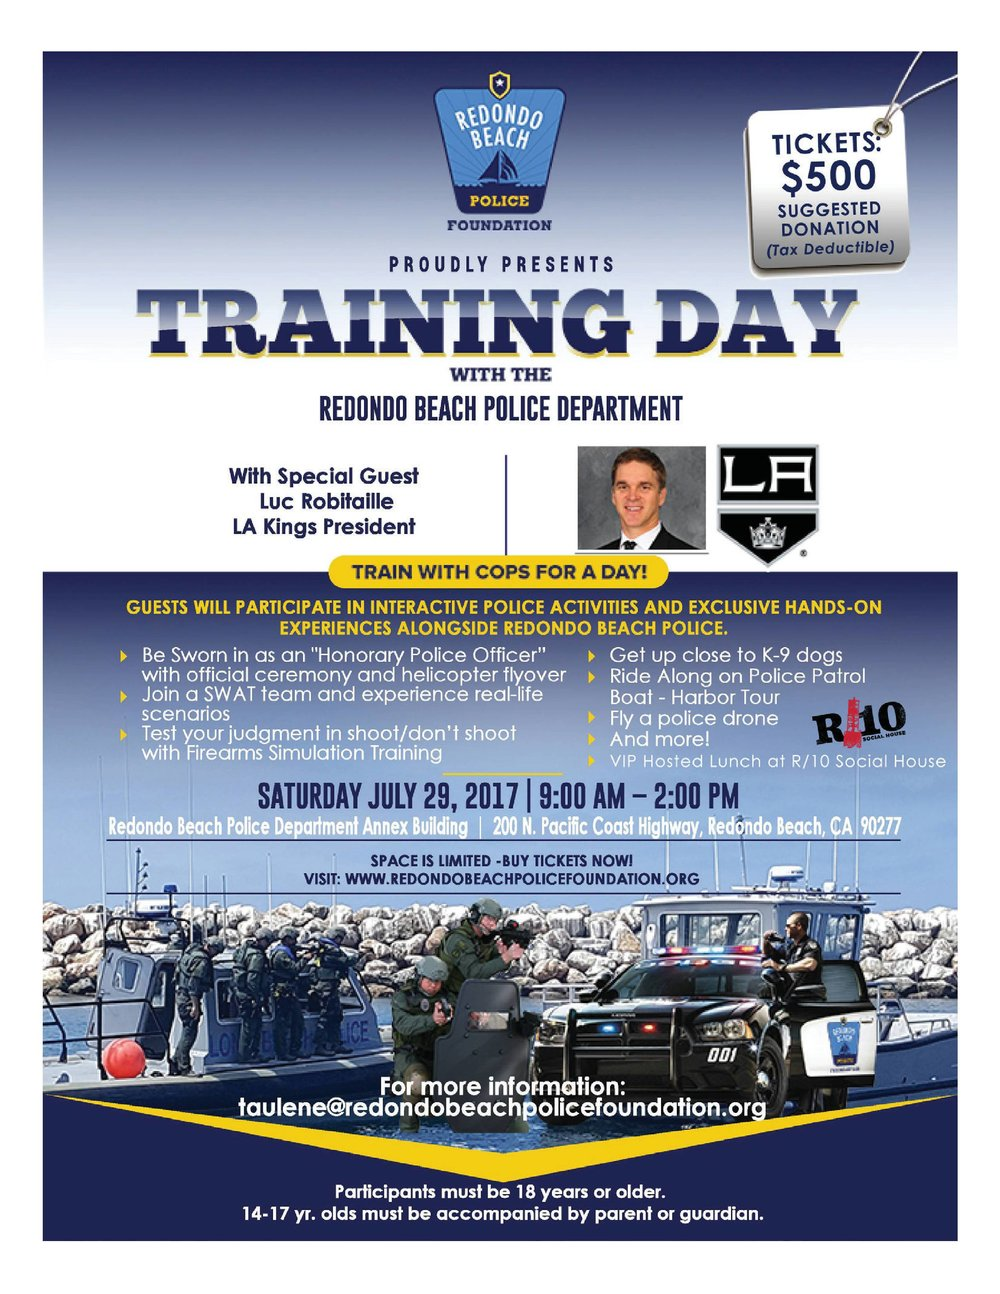 RBPF Training Day Event Flyer_FINAL.jpg